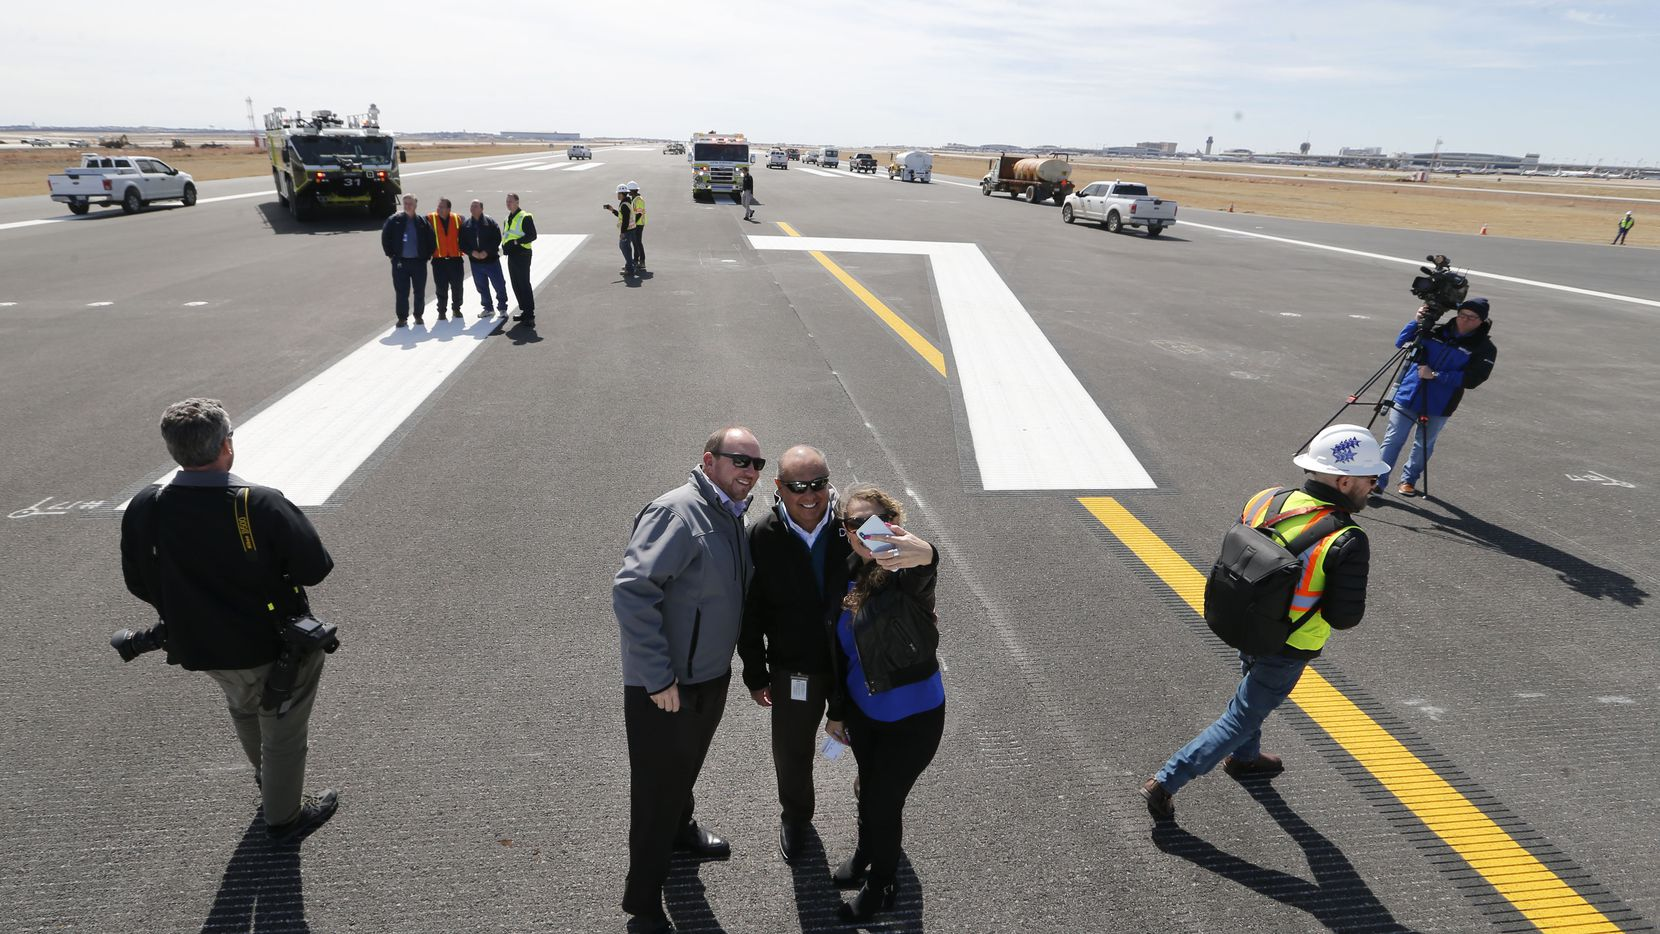 DFW International Airport employees William Grozdanich (group at center, from left), Robert Rodriguez III, and Dana Perez take a group photo together on runway 17C to celebrate the update to it at DFW airport on Monday, February  25, 2019.